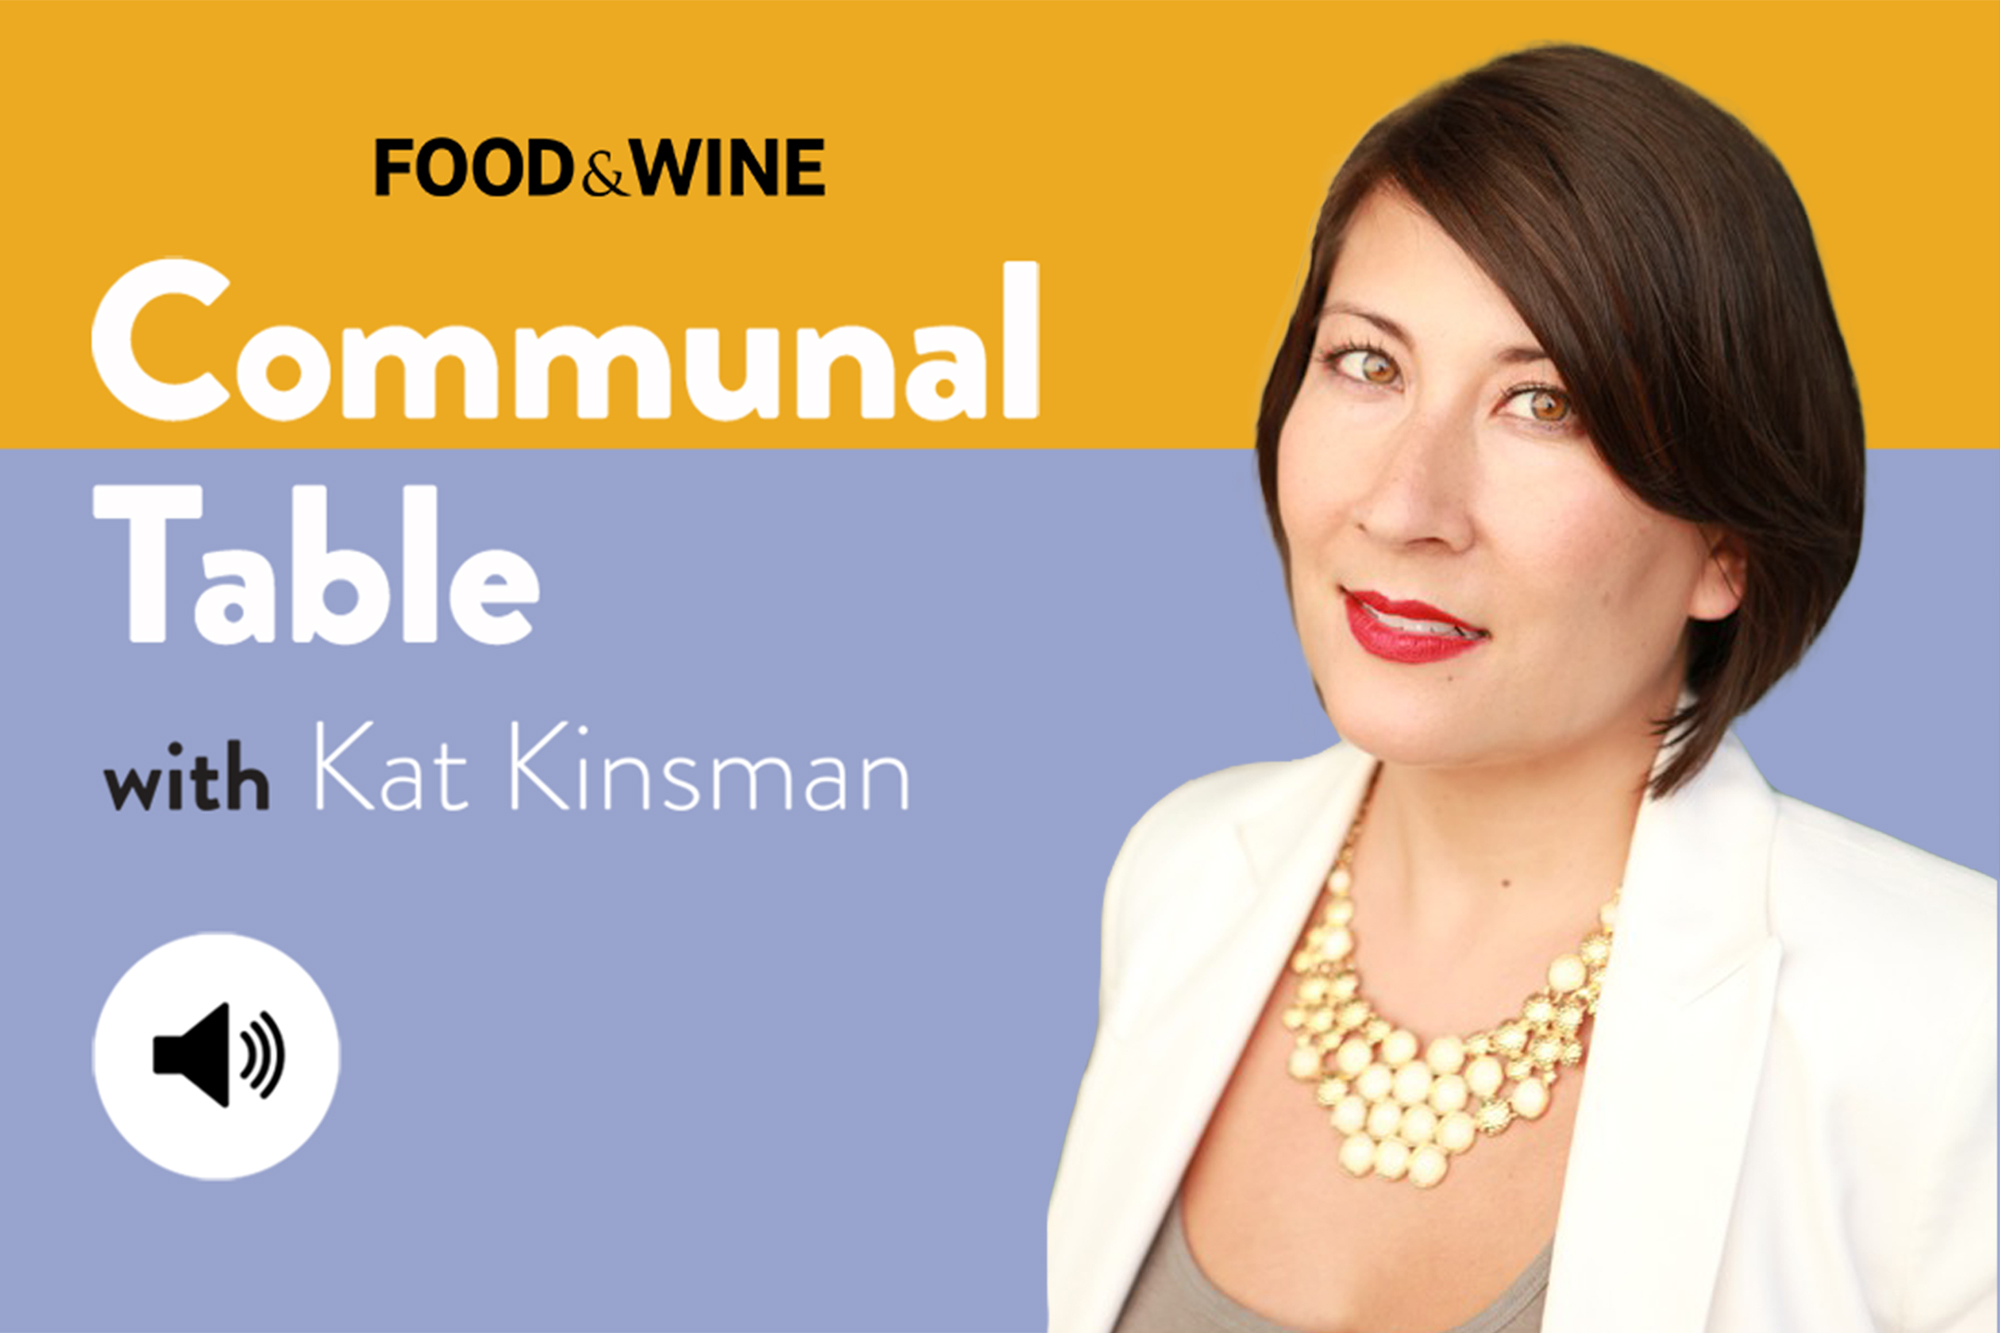 Communal Table with Kat Kinsman featuring Jasmine Moy